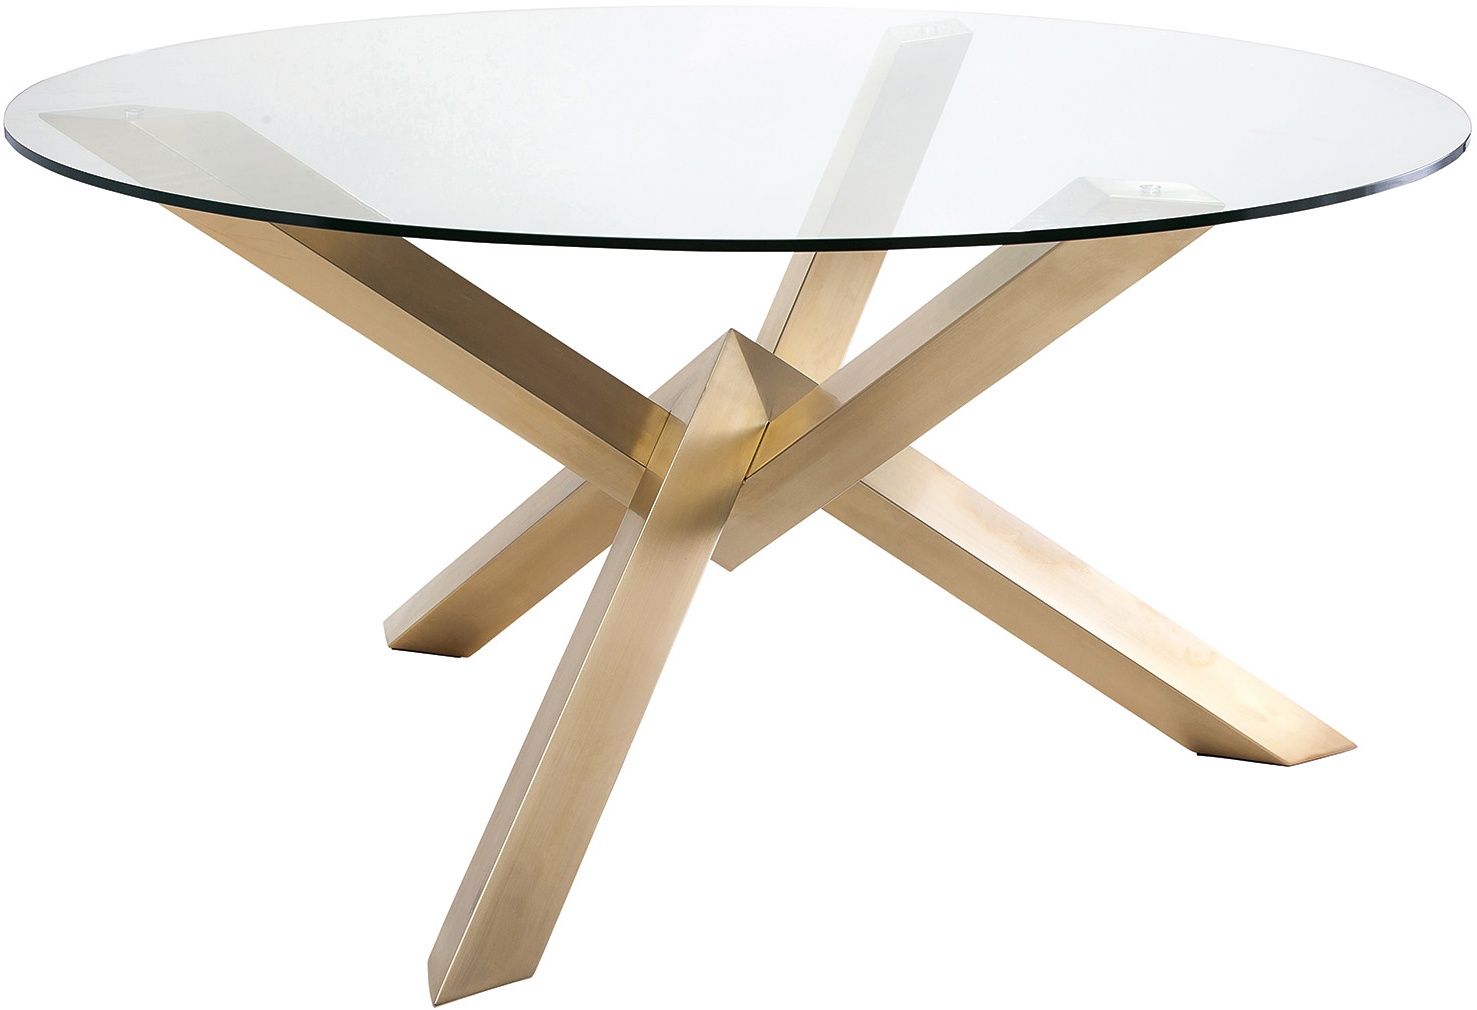 the nuevo living hgtb383 costa dining table